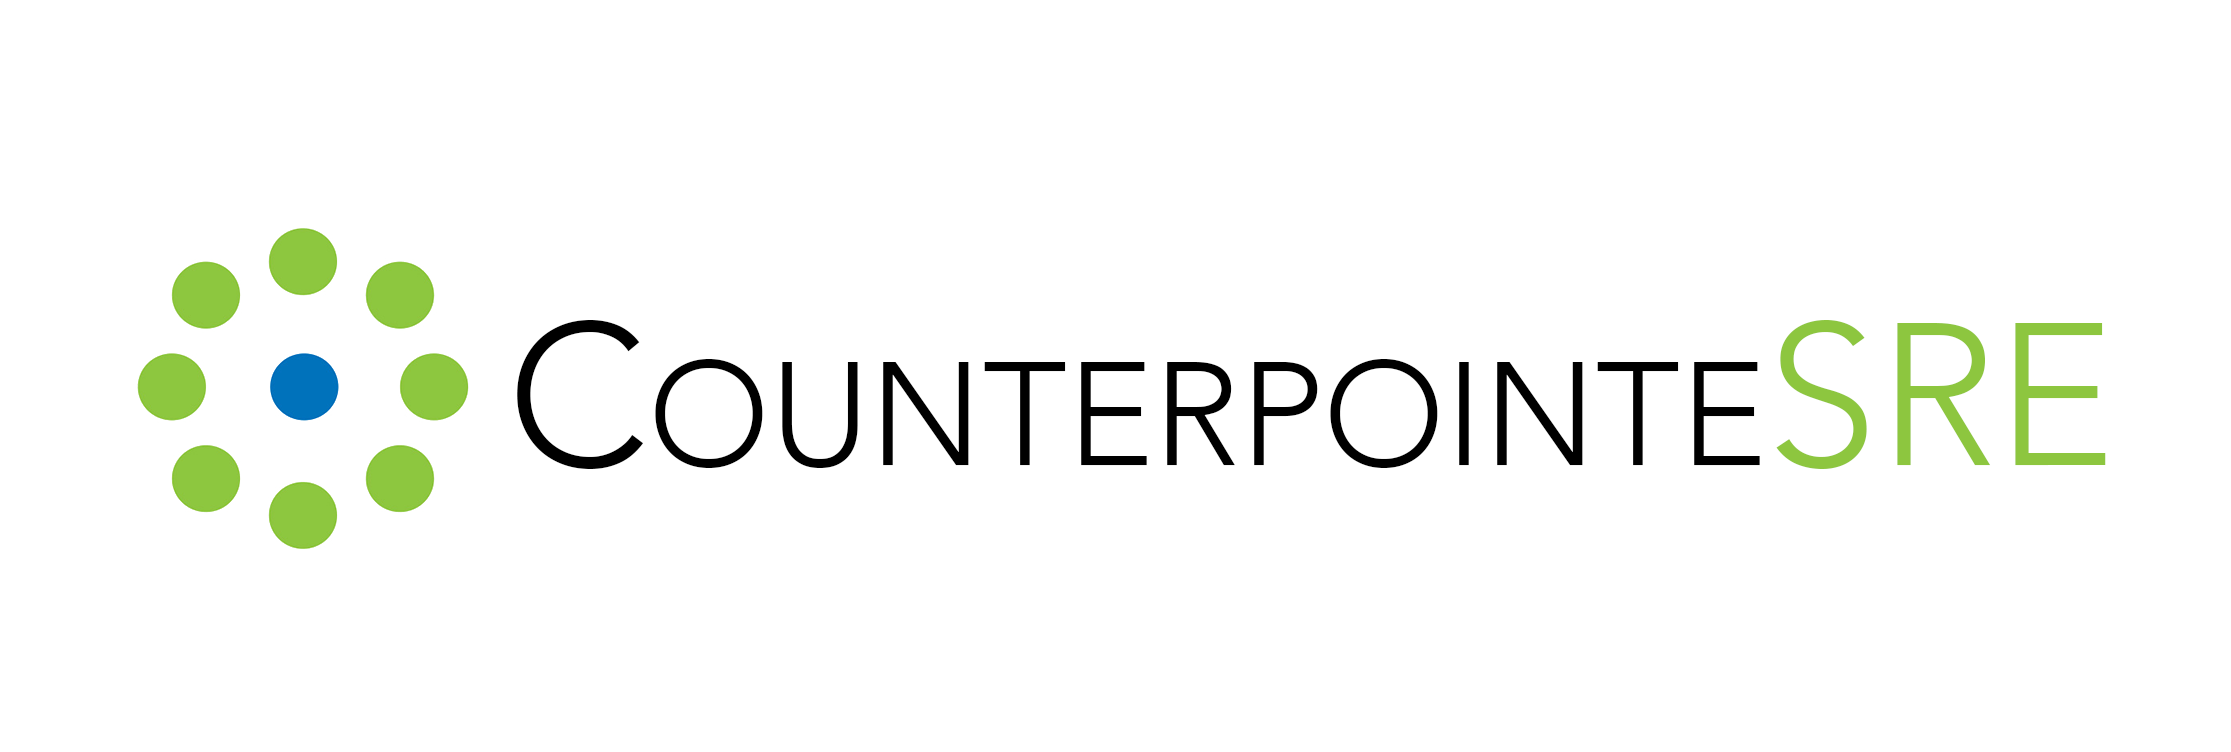 Counterpointe_Logo2.png